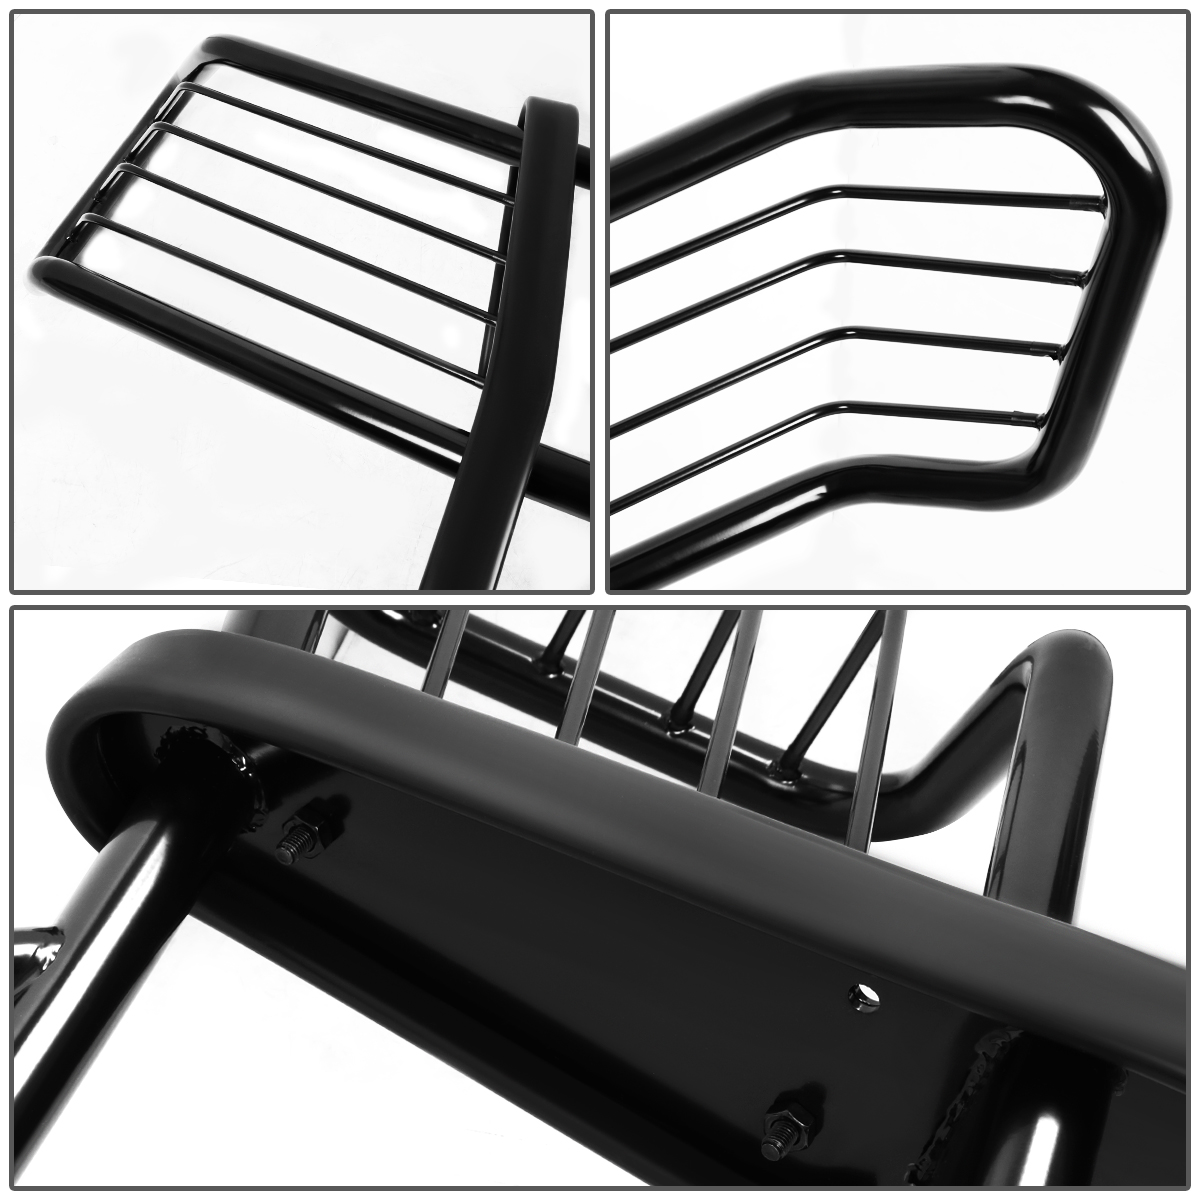 hight resolution of for 02 06 chevy avalanche with cladding front bumper protector brush grille guard black 03 04 05 walmart com